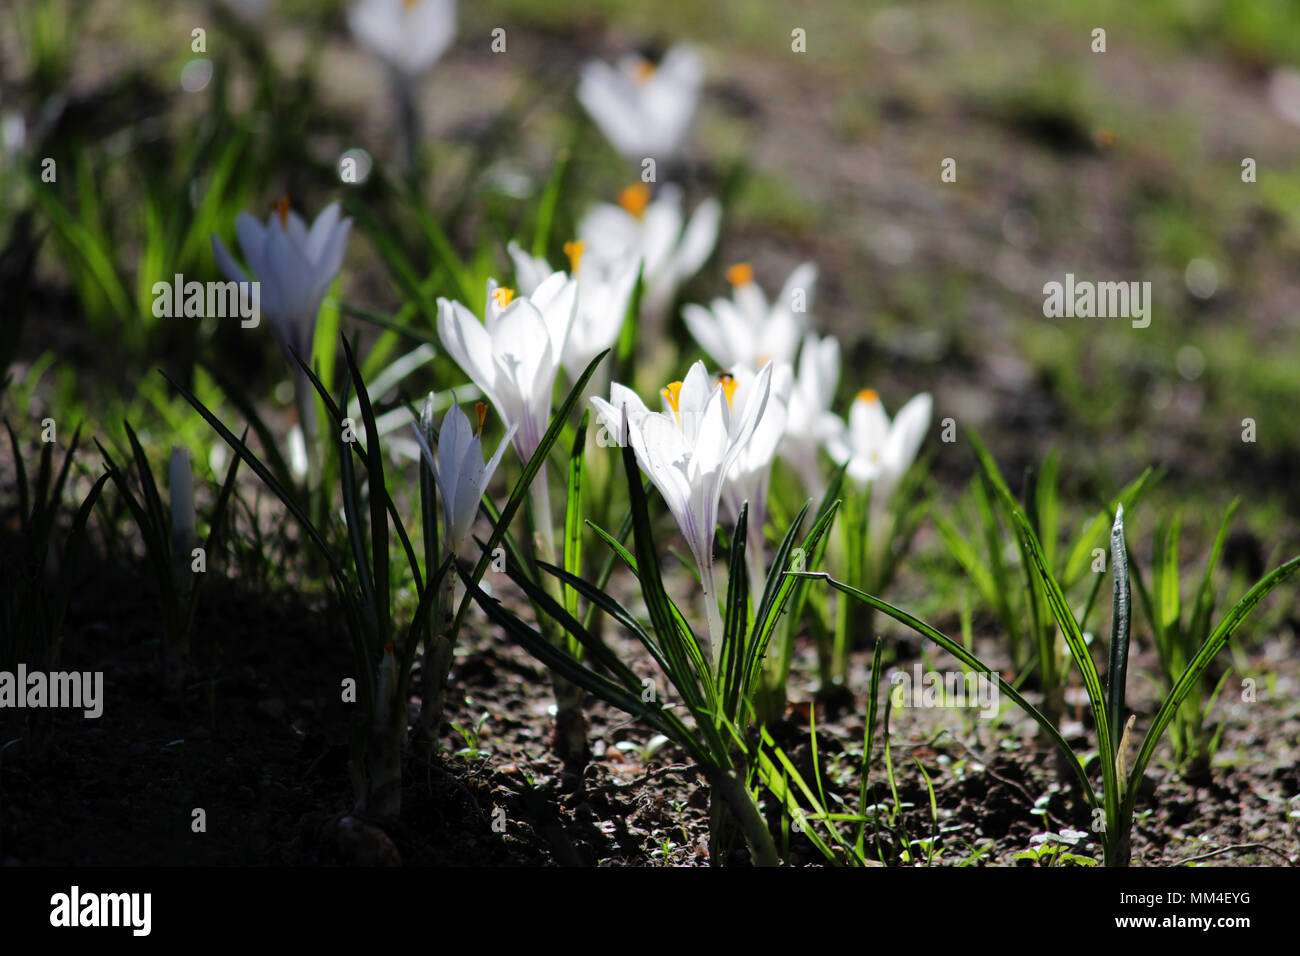 Plural White Crocuses Or Croci In Backlight Is A Genus Of Flowering